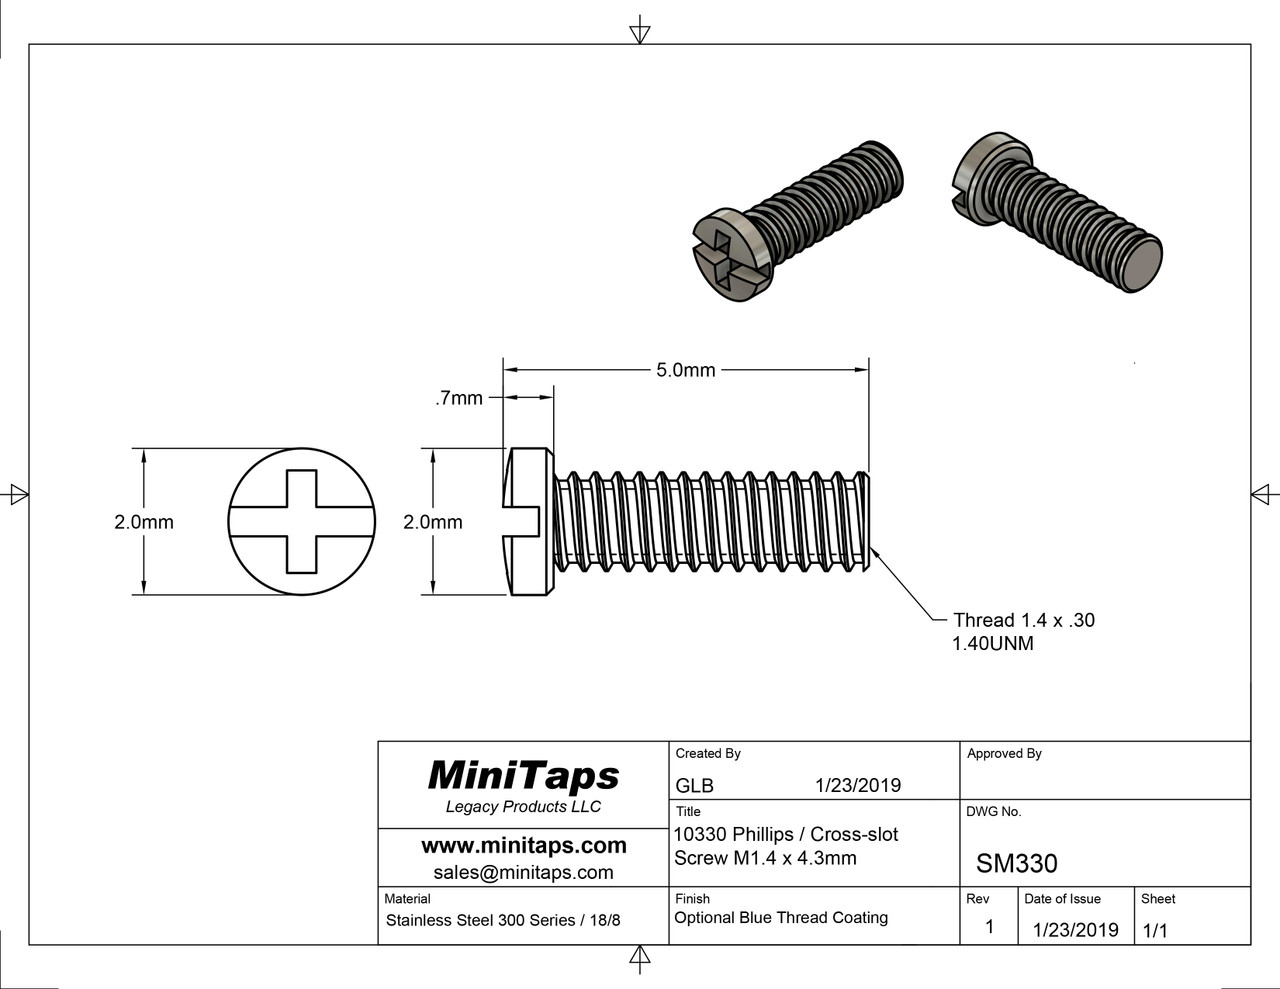 "Machine Screw Pan Head with Philips X-Slot Drive  Thread M1.4, Pitch .30mm, Threaded Length 4.3mm, Overall Length 5.0mm, Head 2.0mm  Stainless Steel  This item is available in three variations 1) Bare stainless steel, 2) Stainless Steel dyed ""Black"" and 3) stainless steel with coated thread. If not specified we send the screws with coated thread.  Price is for 100 count package with bulk pricing available."